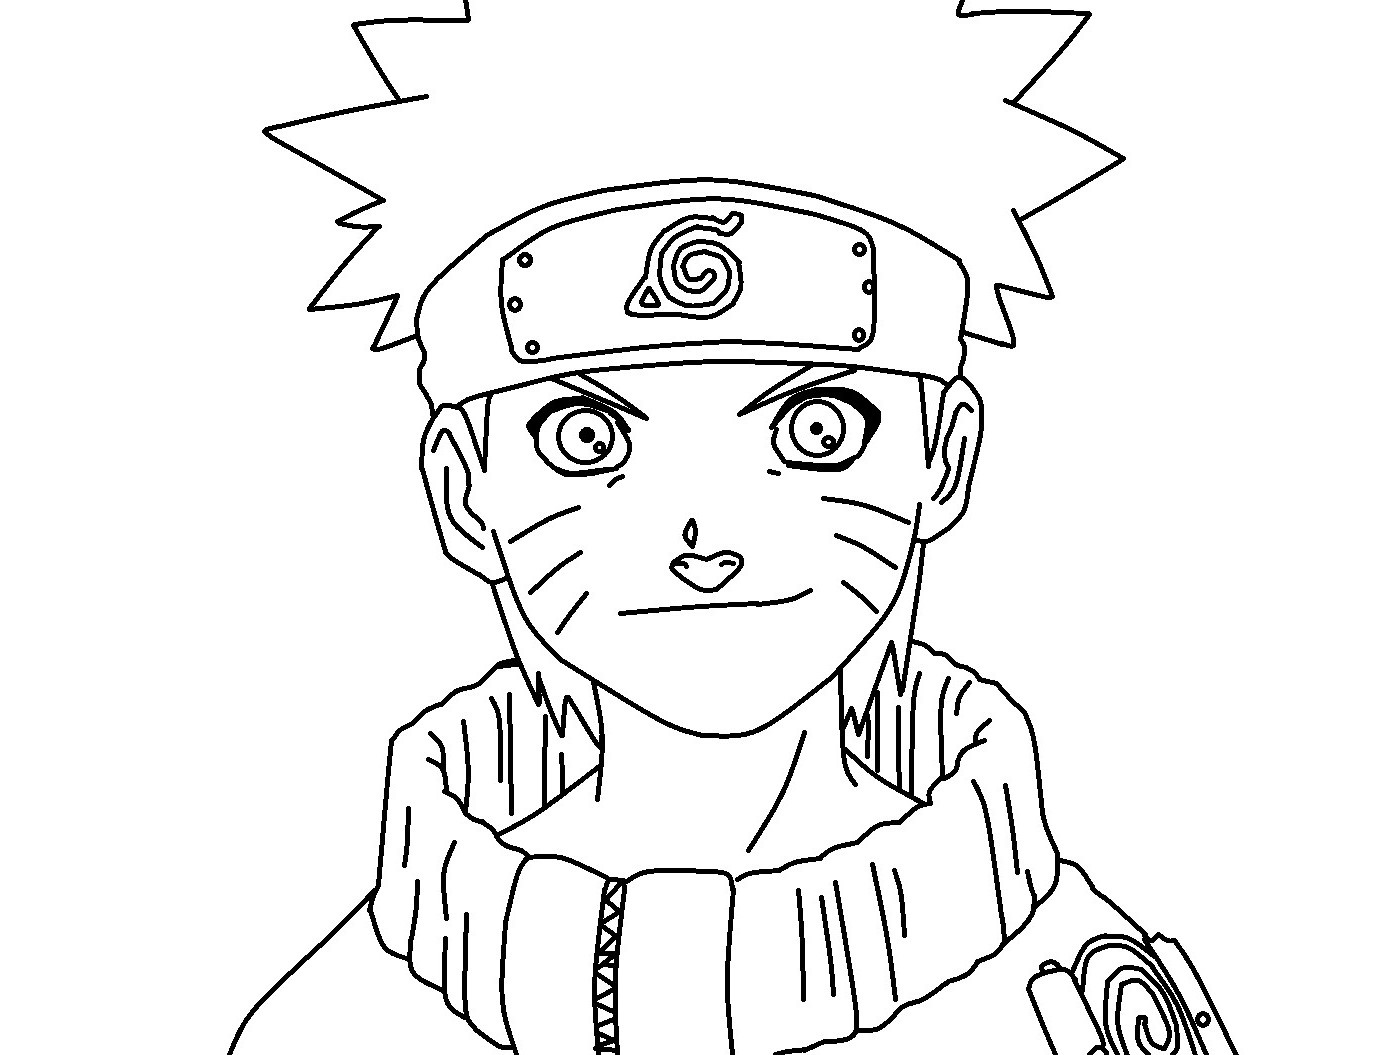 naruto coloring book pages - photo#36